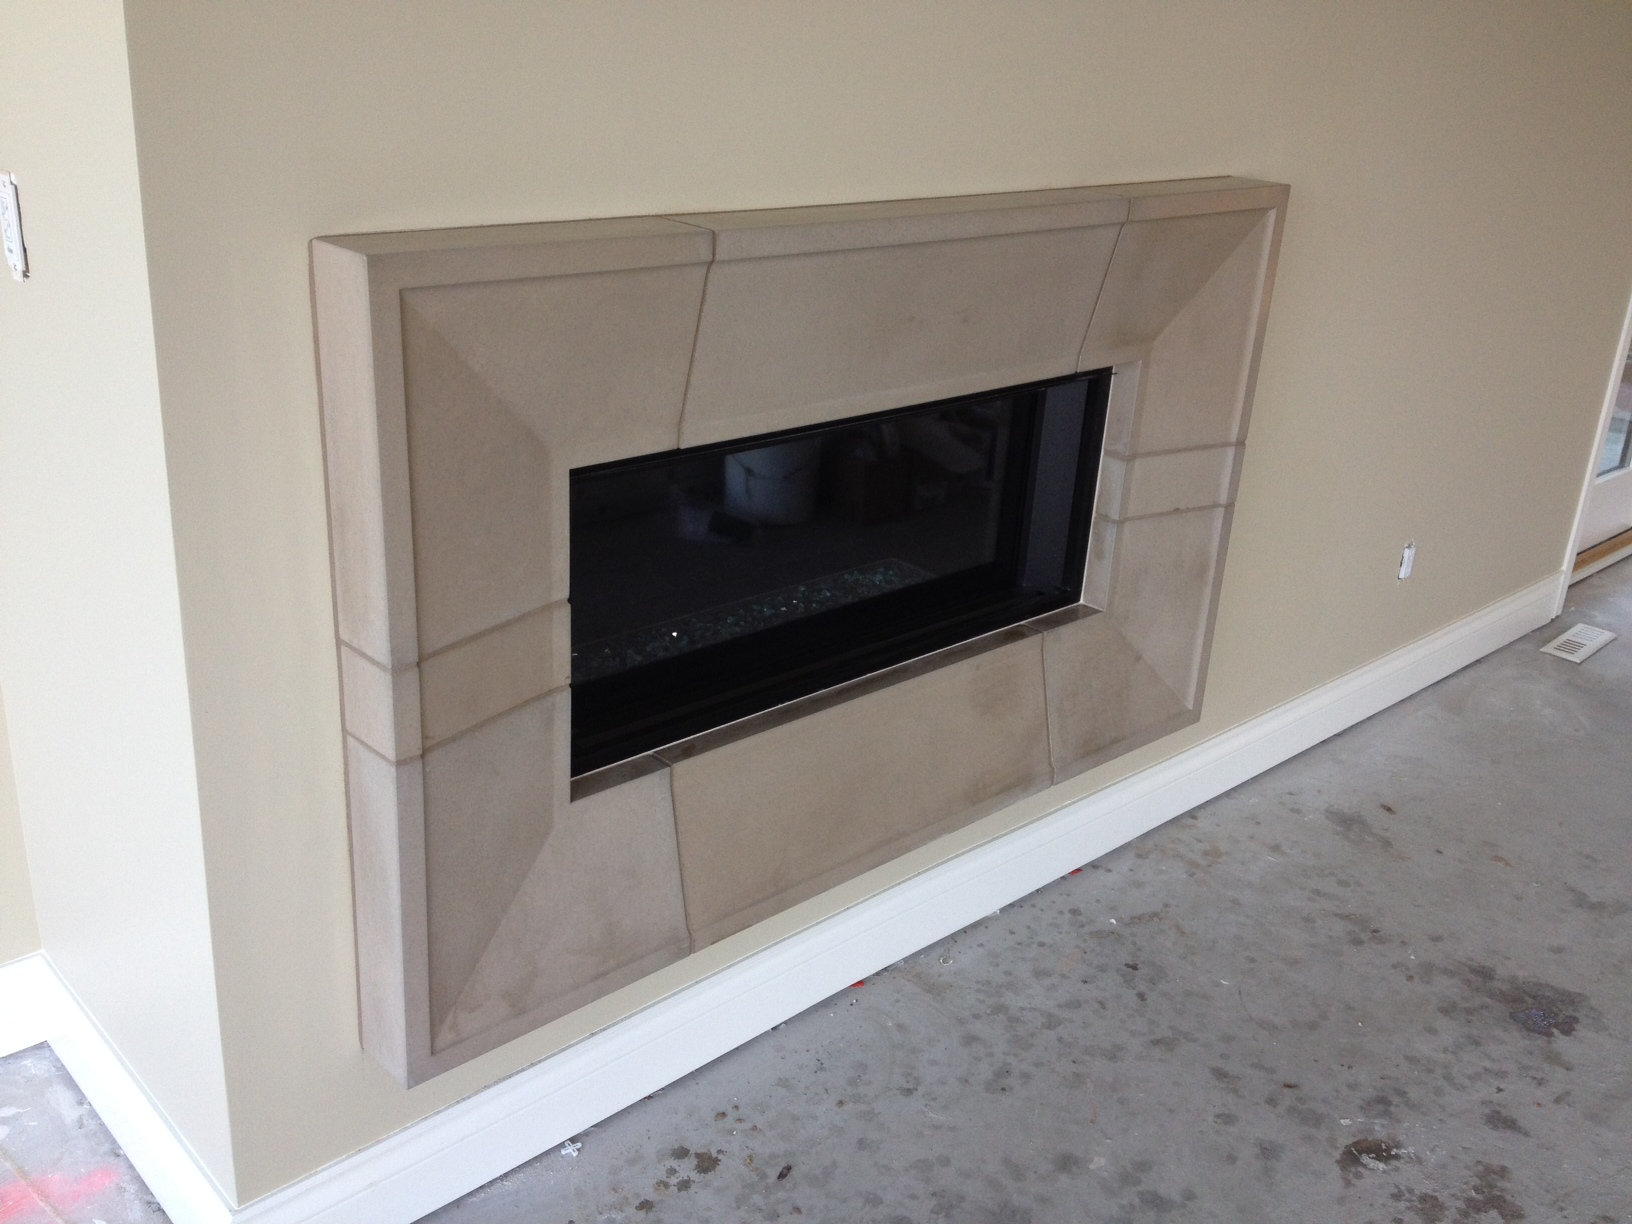 free team taper contact at ideas photo discuss decor like tag floating d our surround to fireplace mantel more know about you your solus design if for